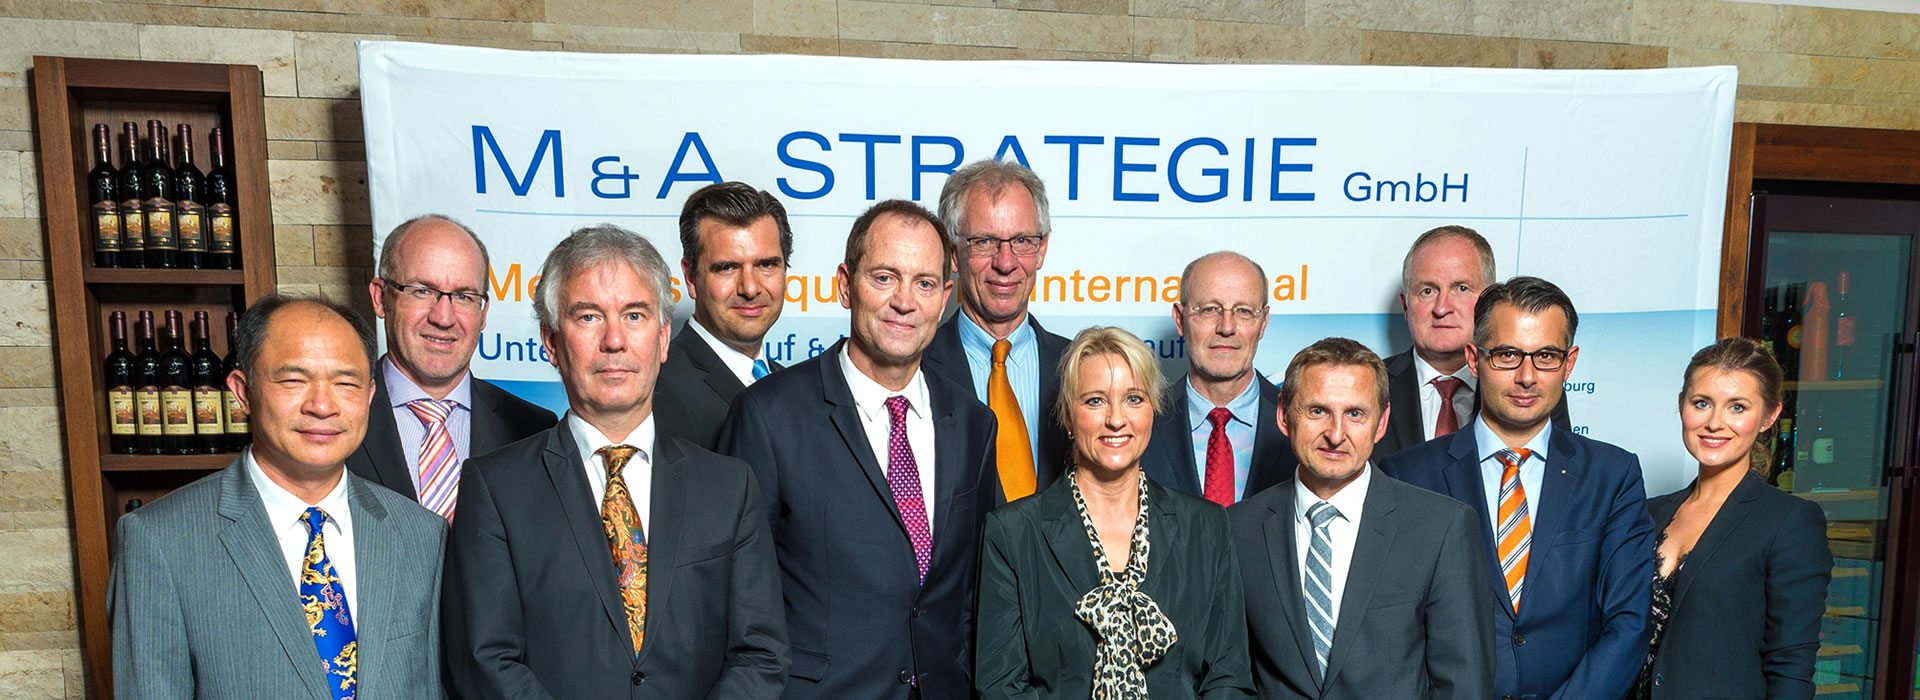 The Team of M & A STRATEGIE GmbH